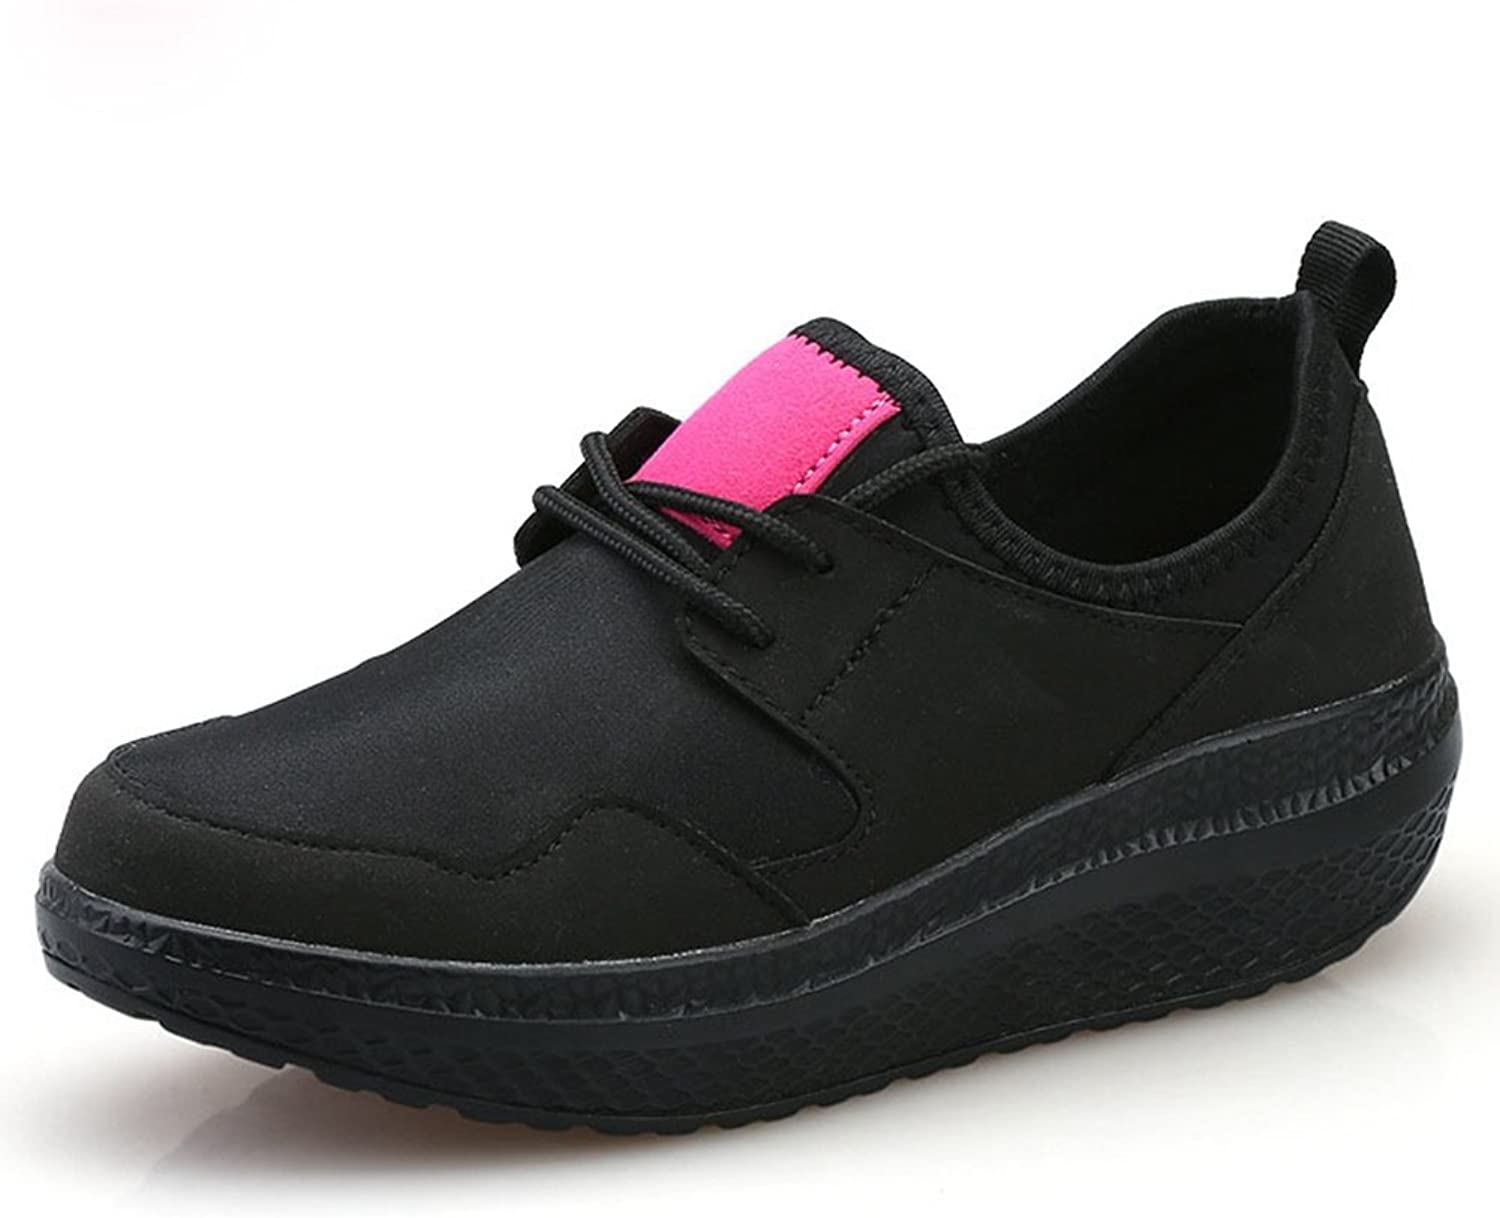 CYBLING Wedge Athletic Sneakers for Women Breathable Low Top Outdoor Walking Running shoes